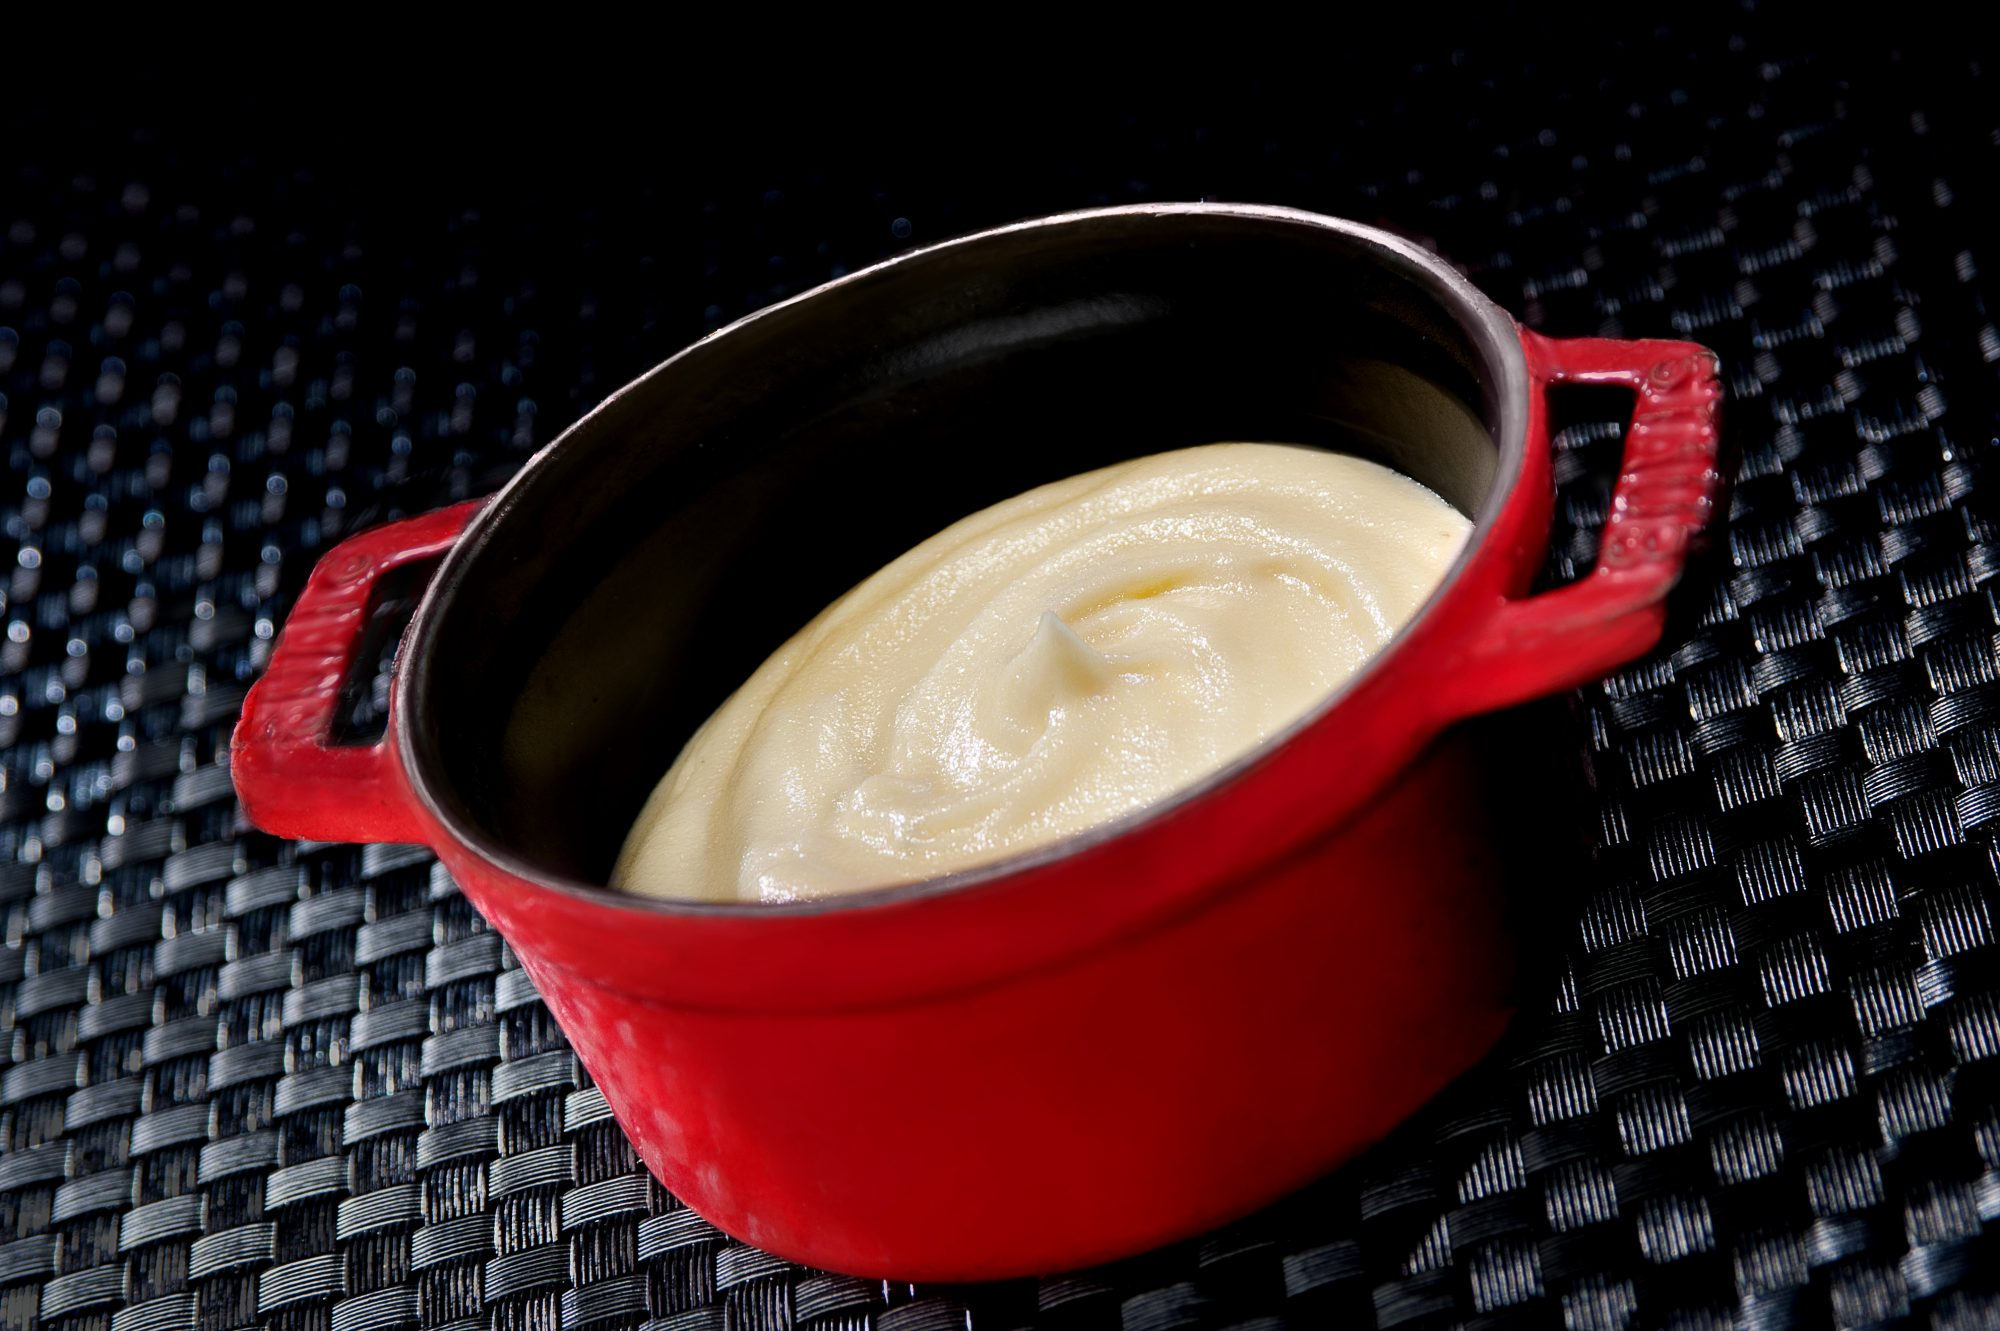 The Elegance of Joël Robuchon's Mashed Potatoes